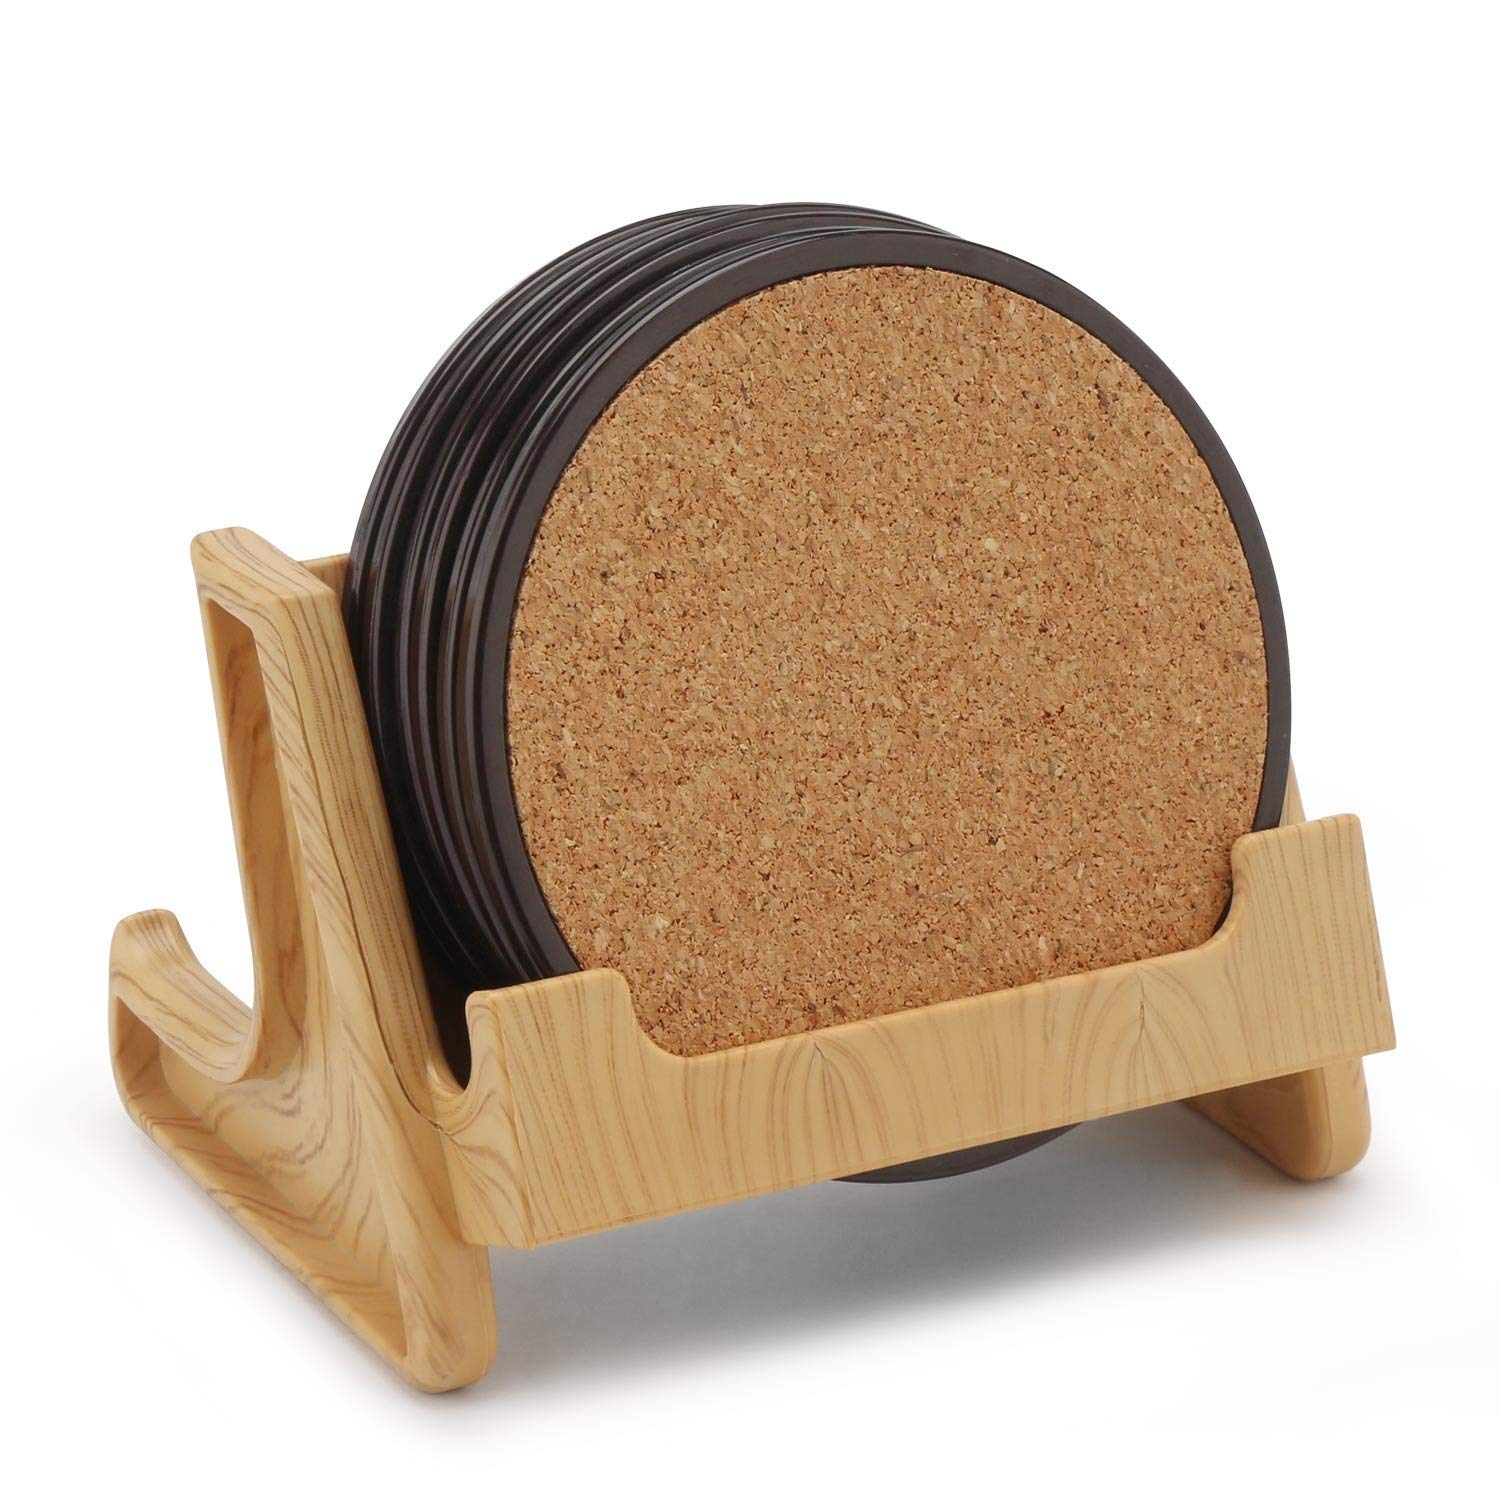 Cork Drink Coasters, Segarty Set of 6 Round Edges 3.6'' X 3.6'' Tabletop Cork Coasters & Coaster Holder, Reusable Cork Mat for Drinks At Home, Office, Cottage